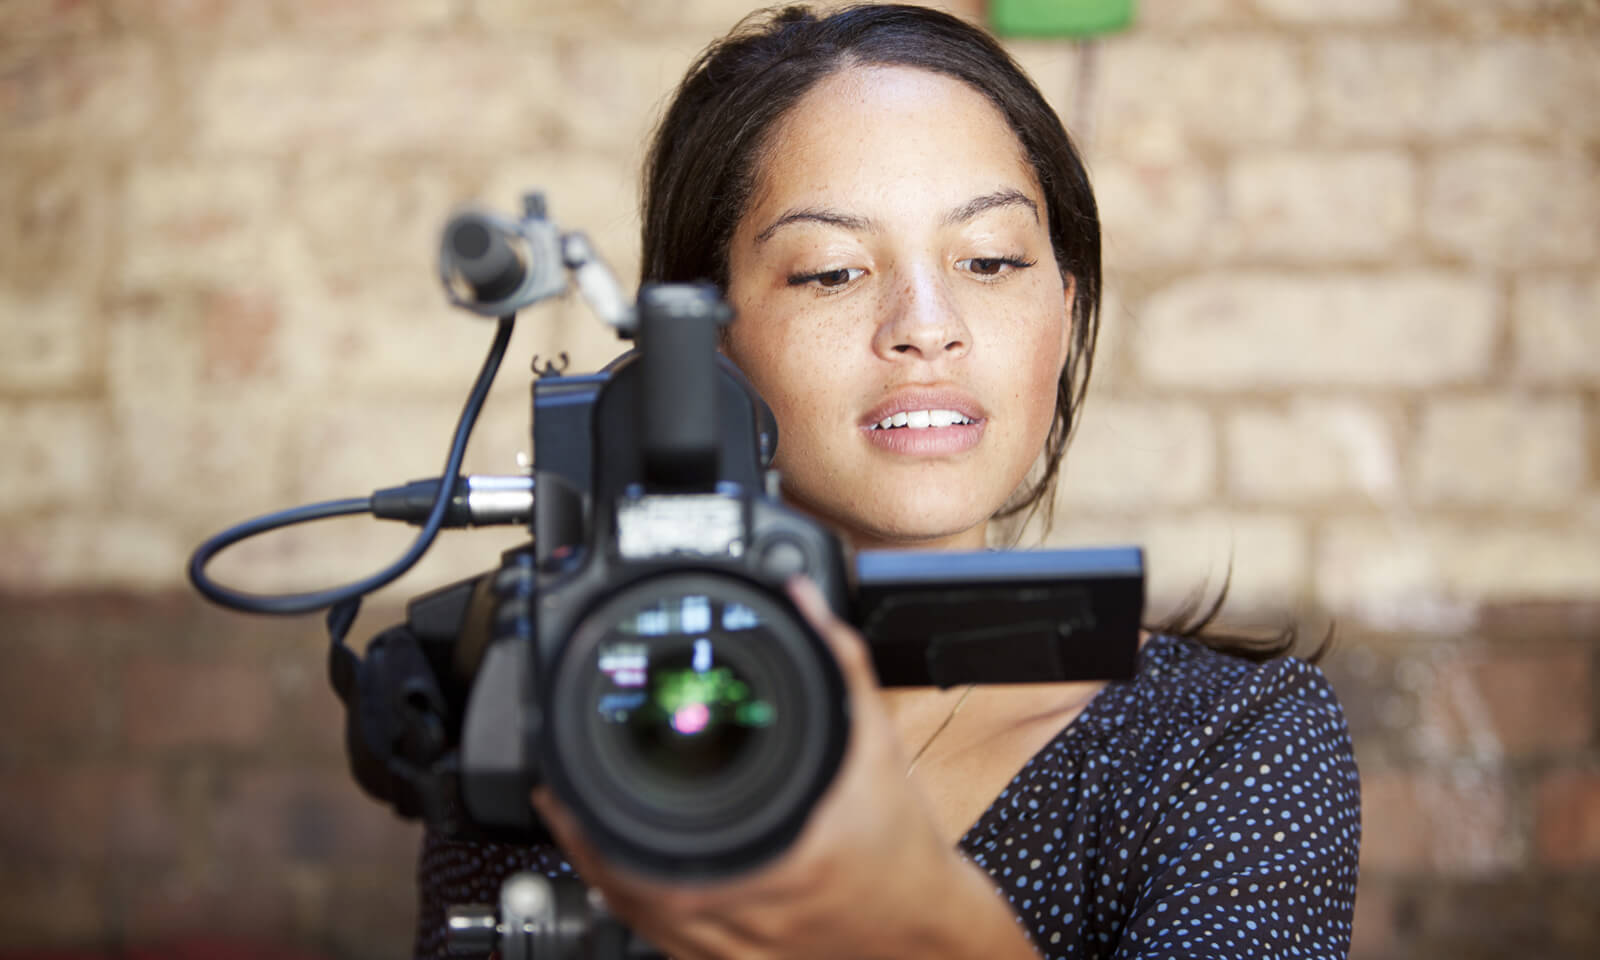 5 Easy Ways to Create Video Content for Social Media